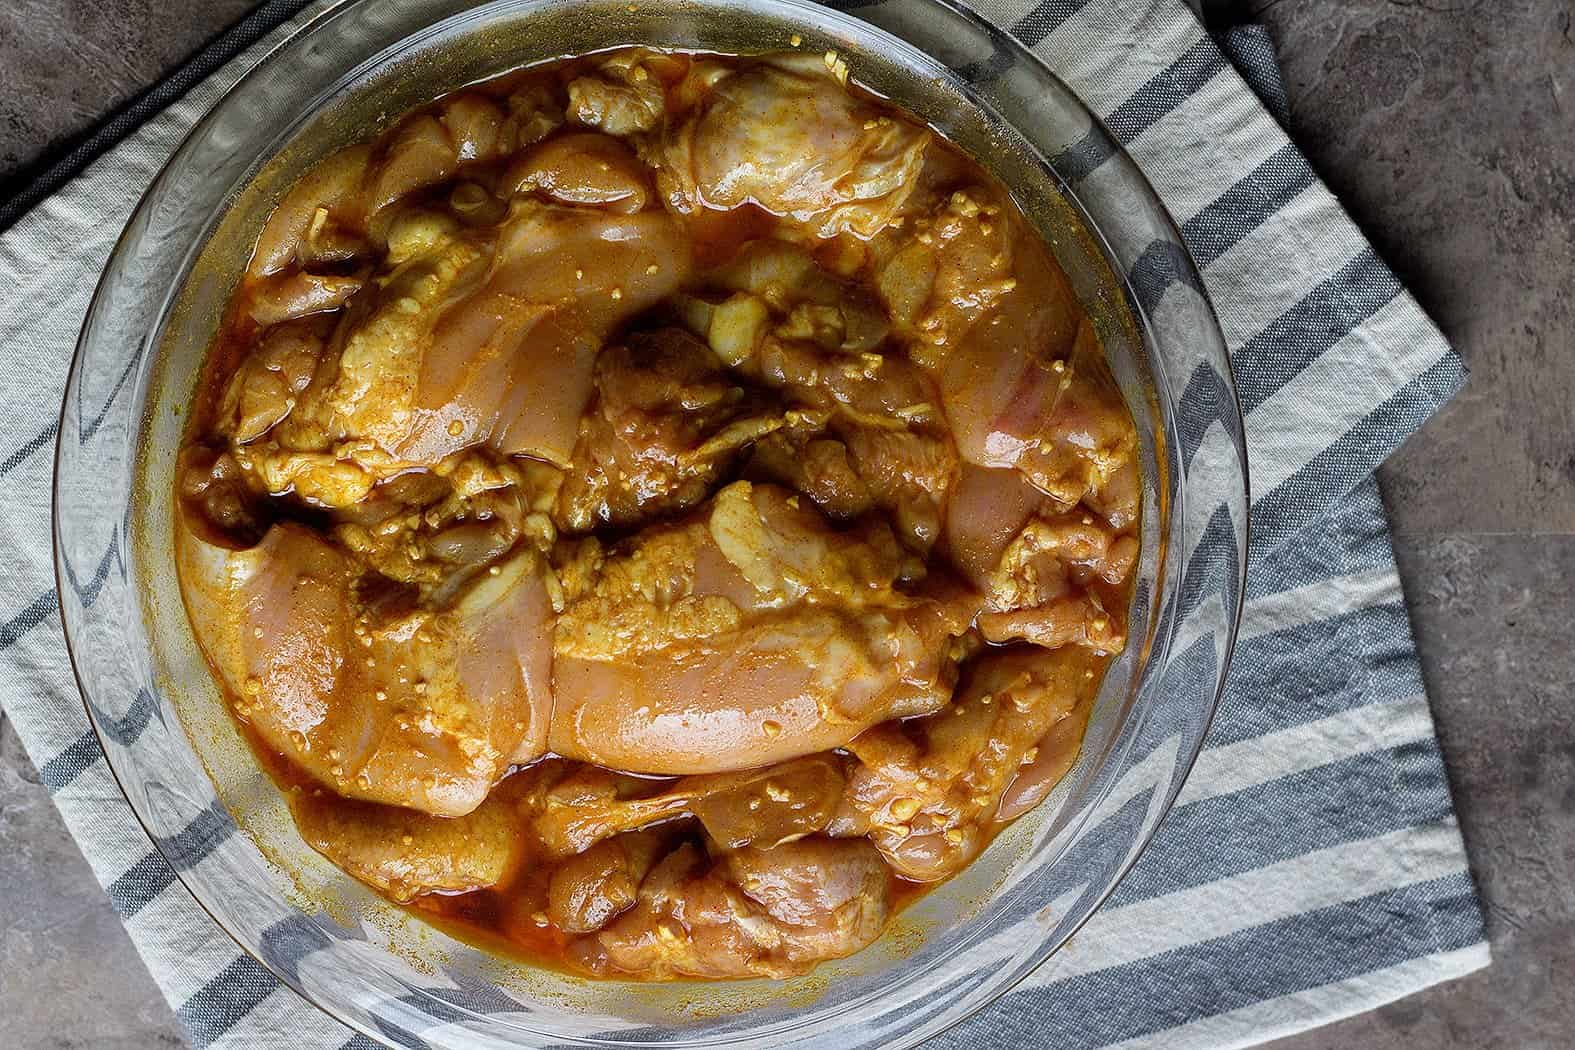 To make the marinade for chicken shawarma, mix all the spices in a large bowl and add in olive oil, lemon juice and garlic.